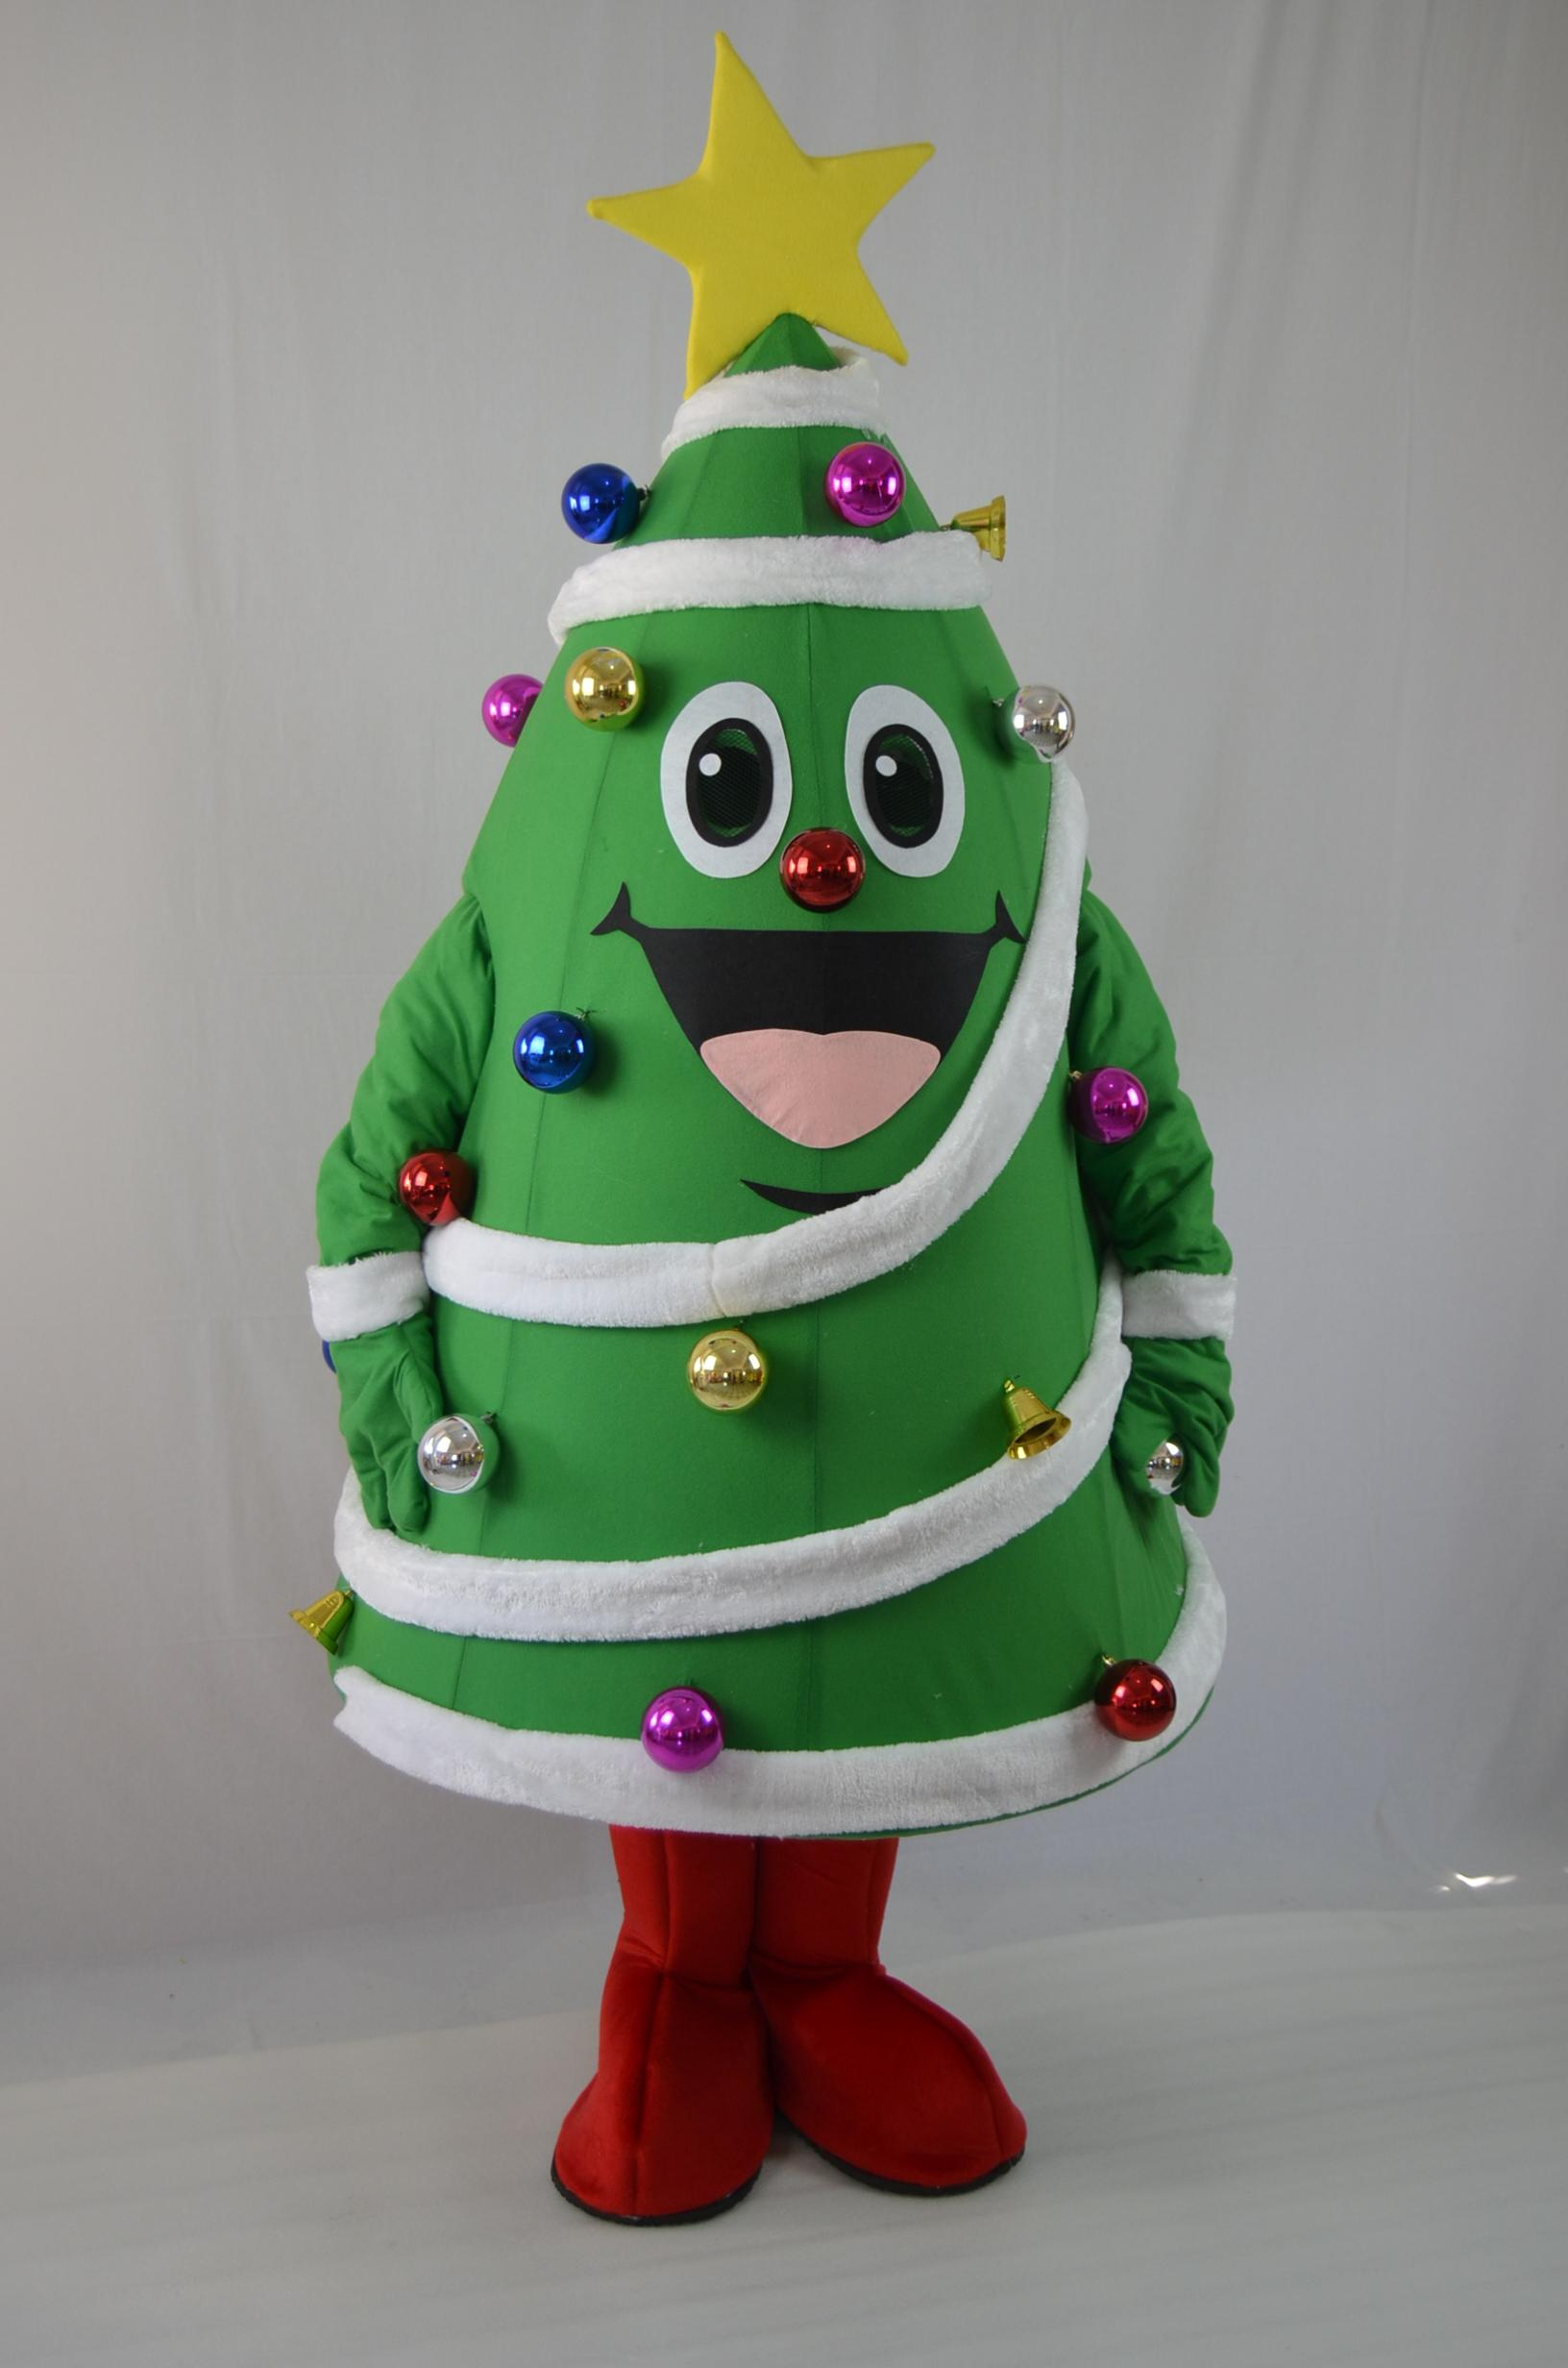 New Fancy Dress Santa Claus Costumes Mascot Christmas Tree Halloween Easter Performance Animal Explorer Adults Costumes for Guys Santa Claus Mascot Costume ... & New Fancy Dress Santa Claus Costumes Mascot Christmas Tree Halloween ...